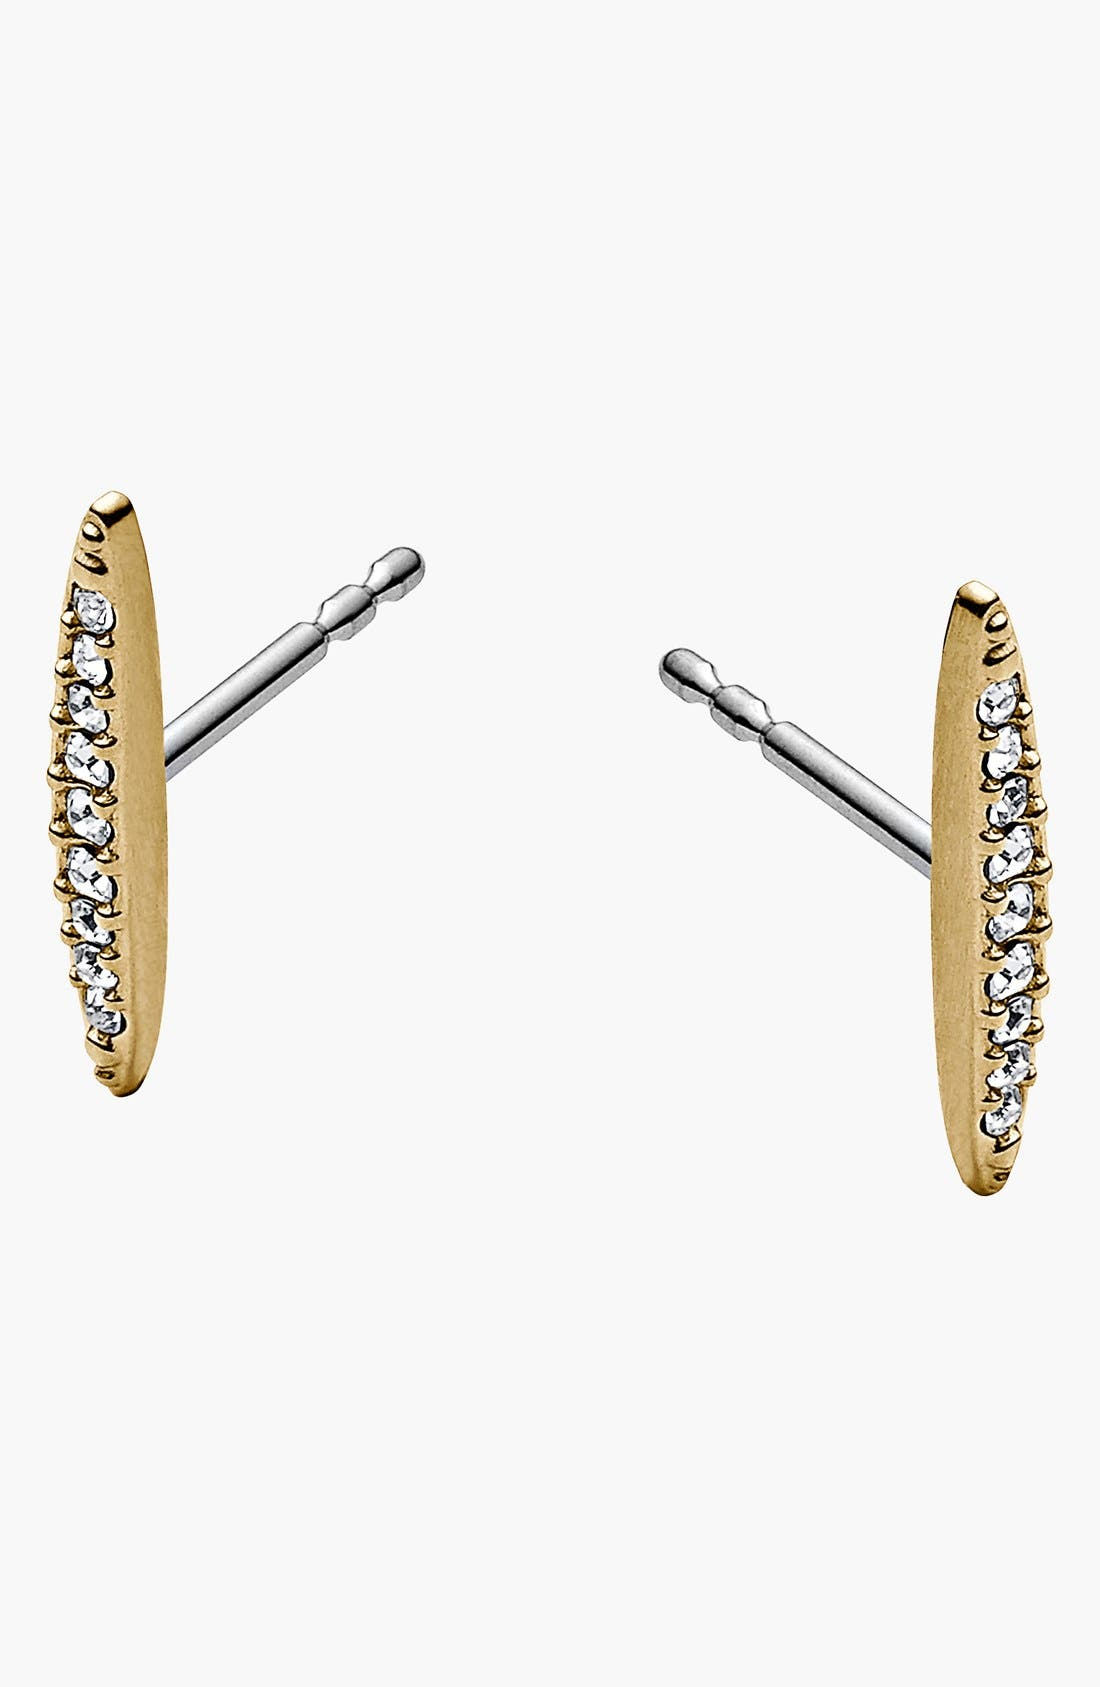 Alternate Image 1 Selected - Michael Kors 'Matchstick' Pavé Stud Earrings